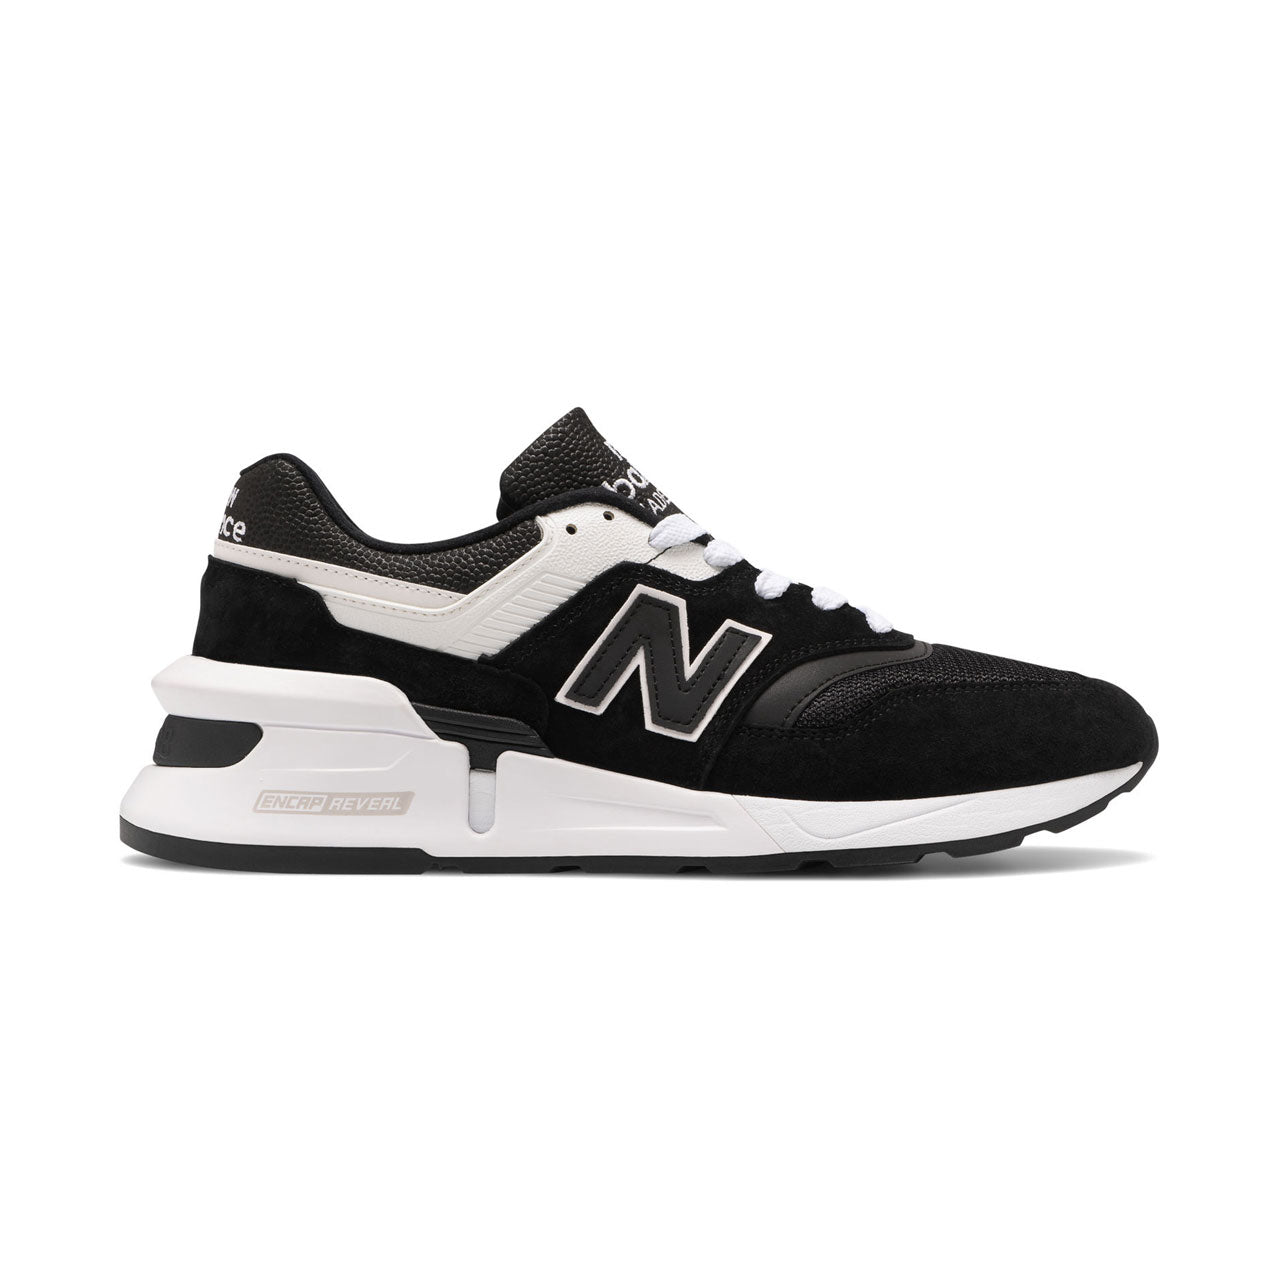 New Balance Made in USA 997 Sport Sneakers